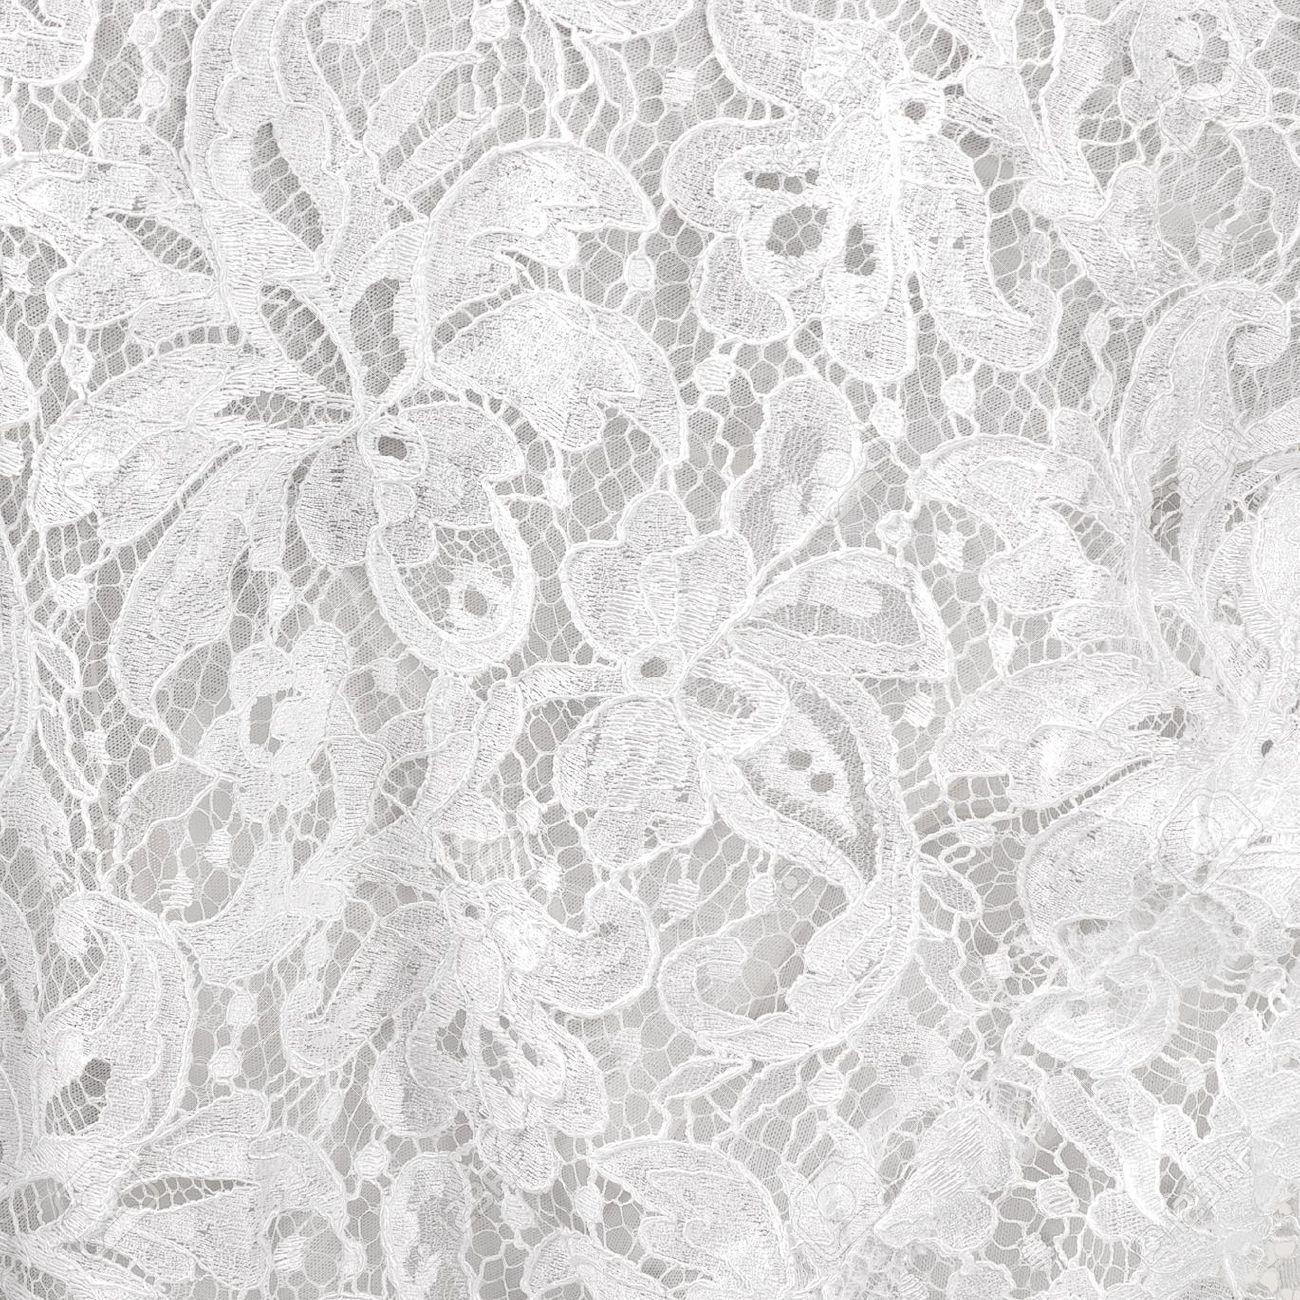 Black And White Victorian Wallpaper White Lace Backgrounds Wallpaper Cave